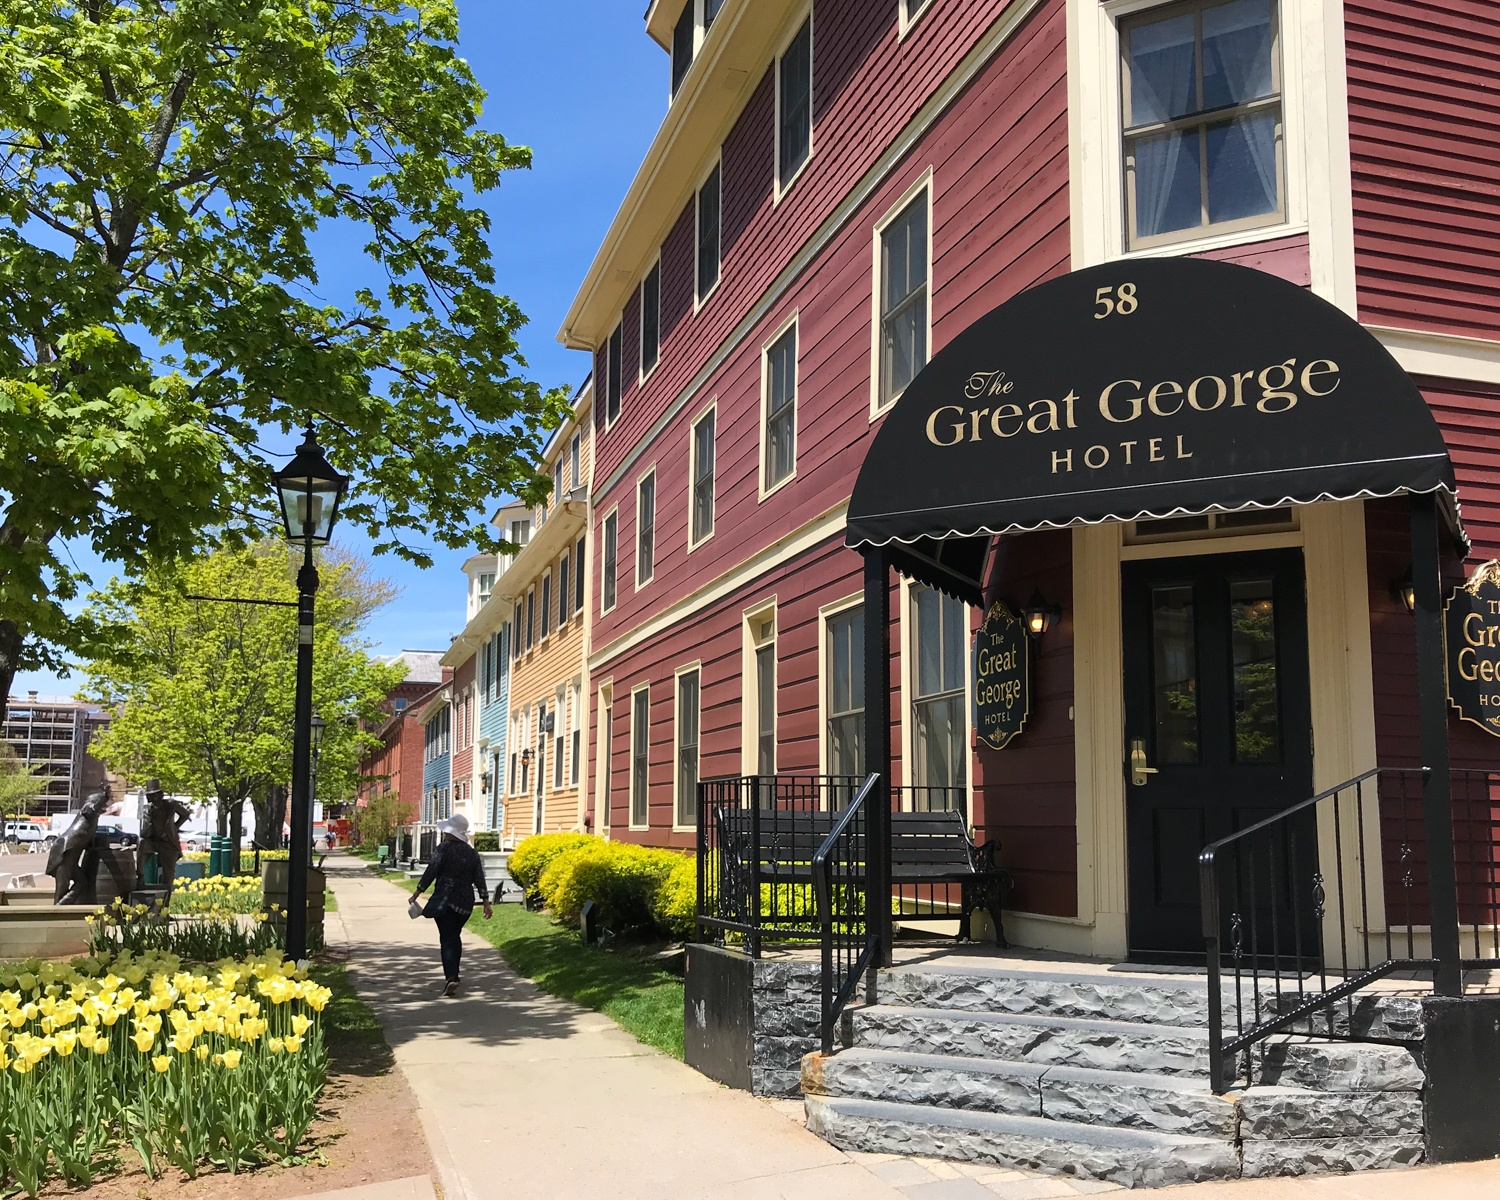 PEI Food - Great George Hotel in Charlottetown Photo Heatheronhertravels.com